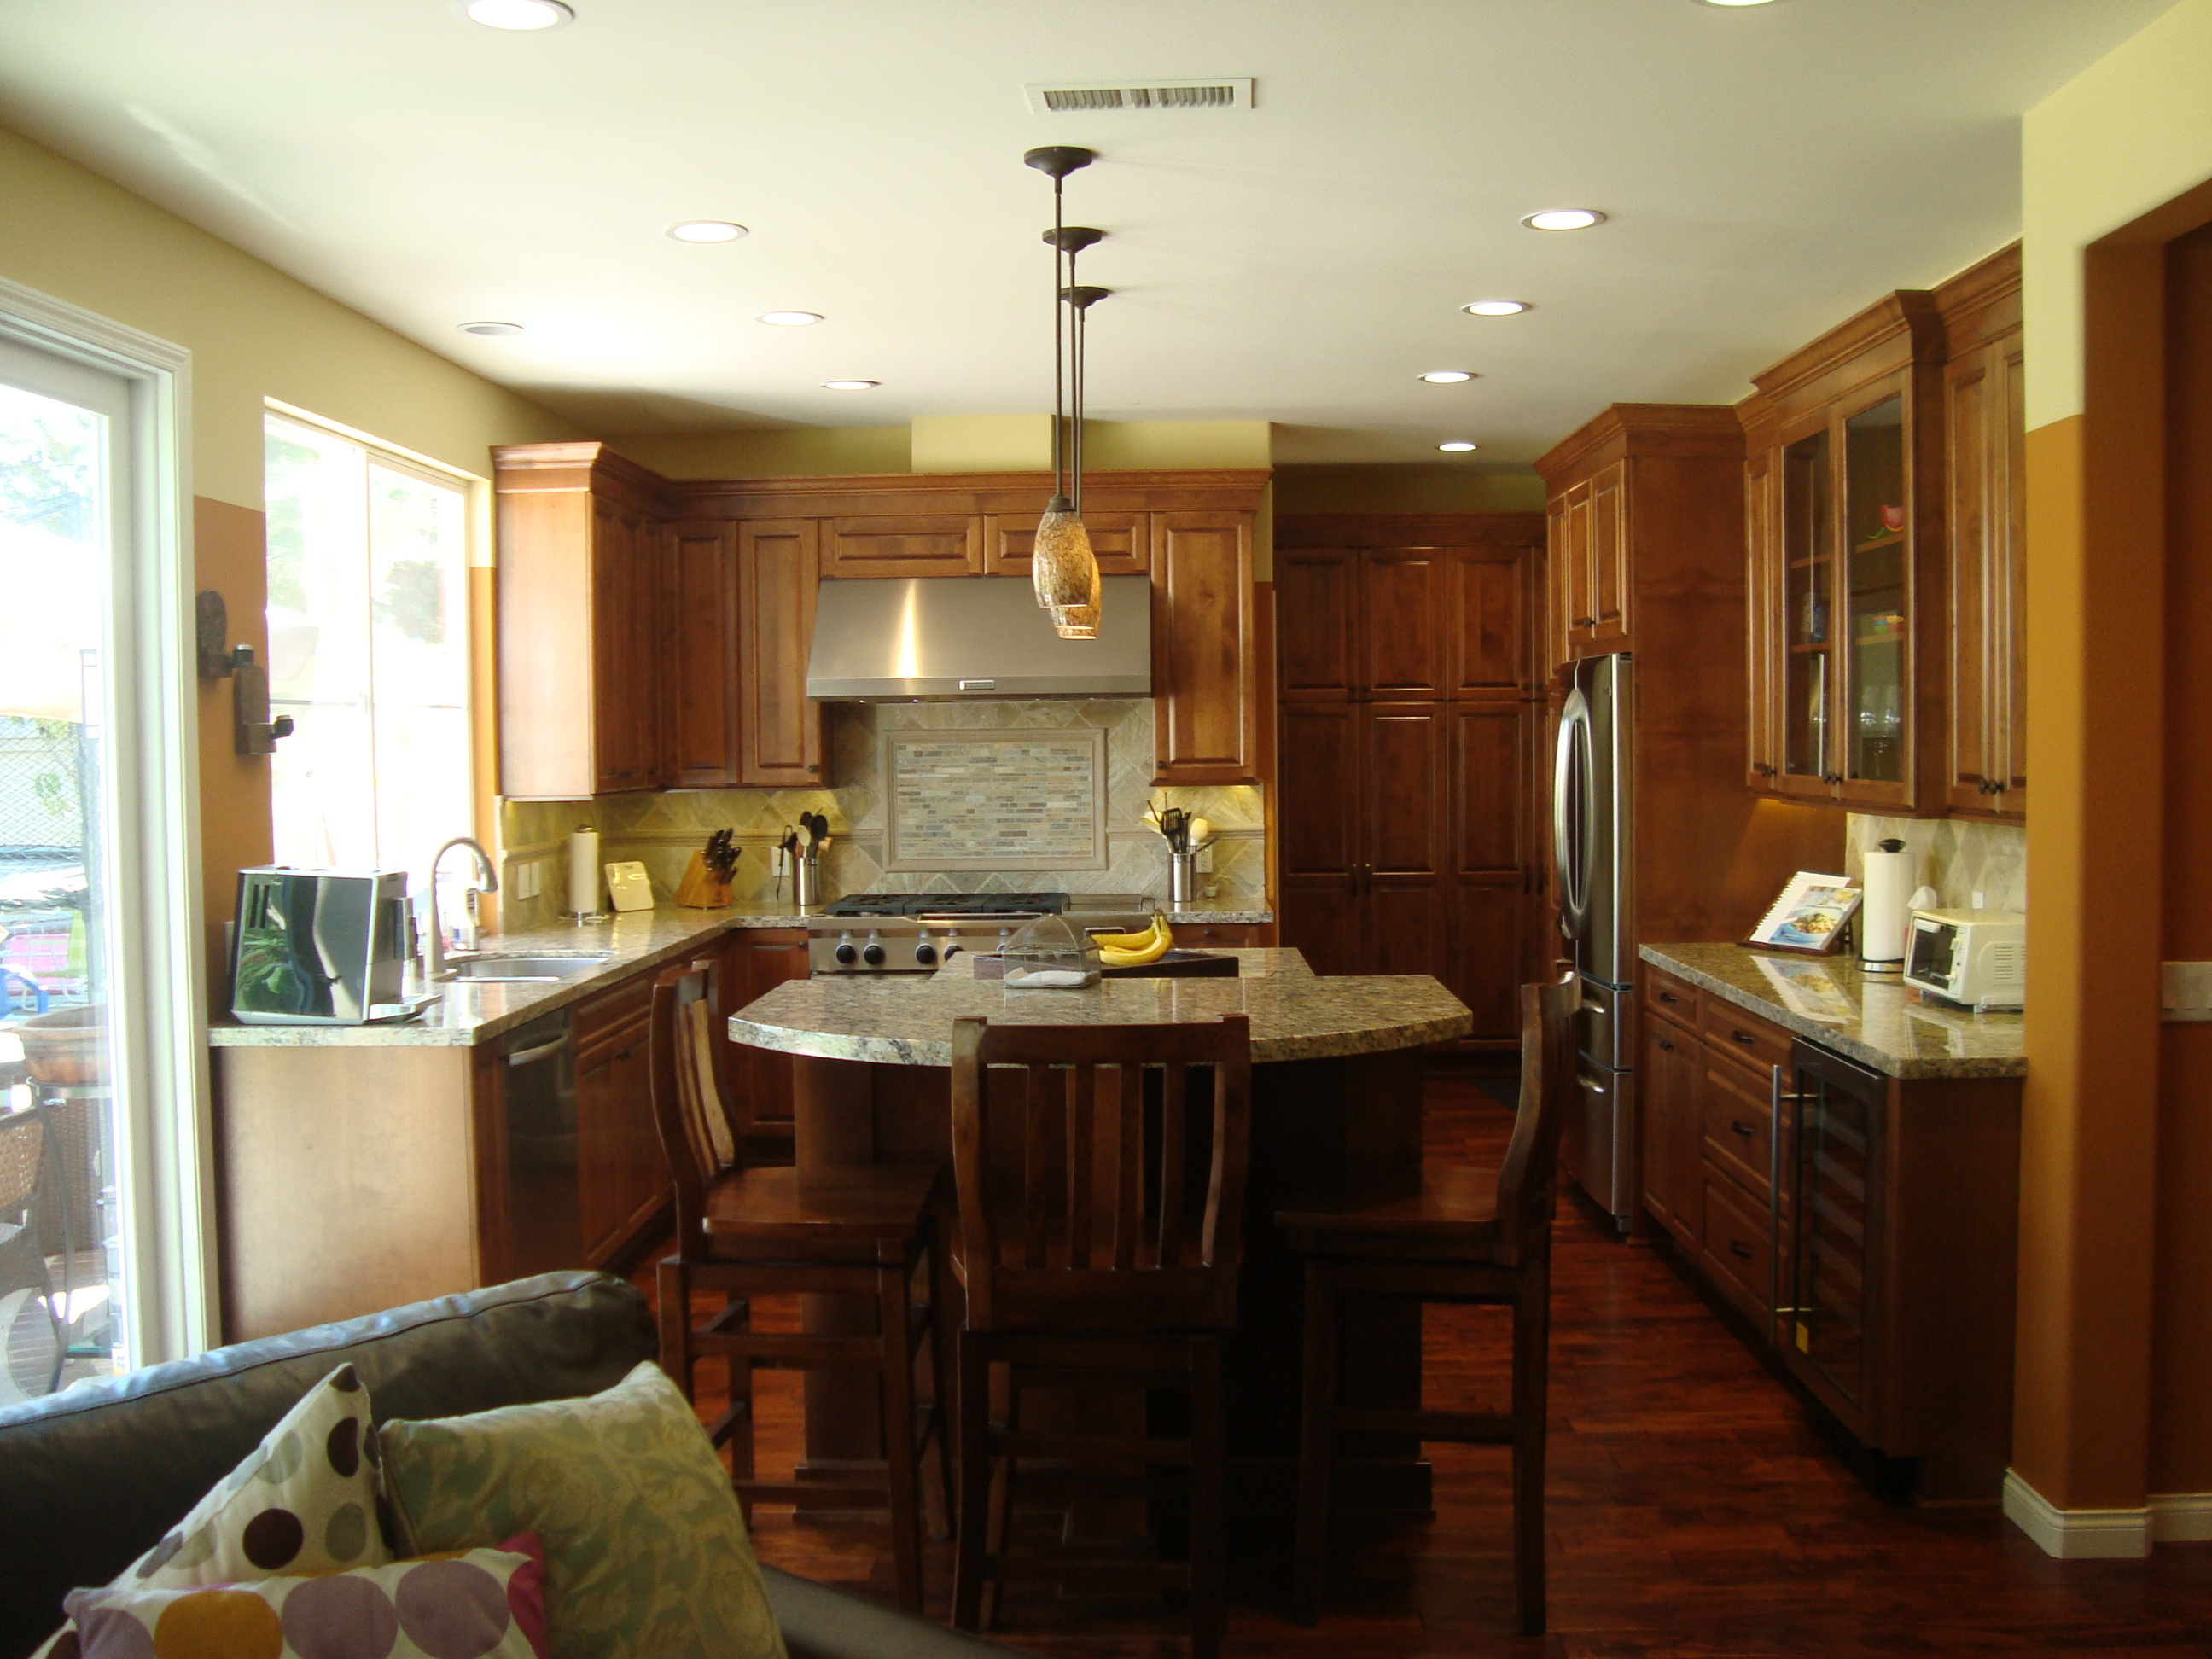 Huntington Beach Interior Designer |